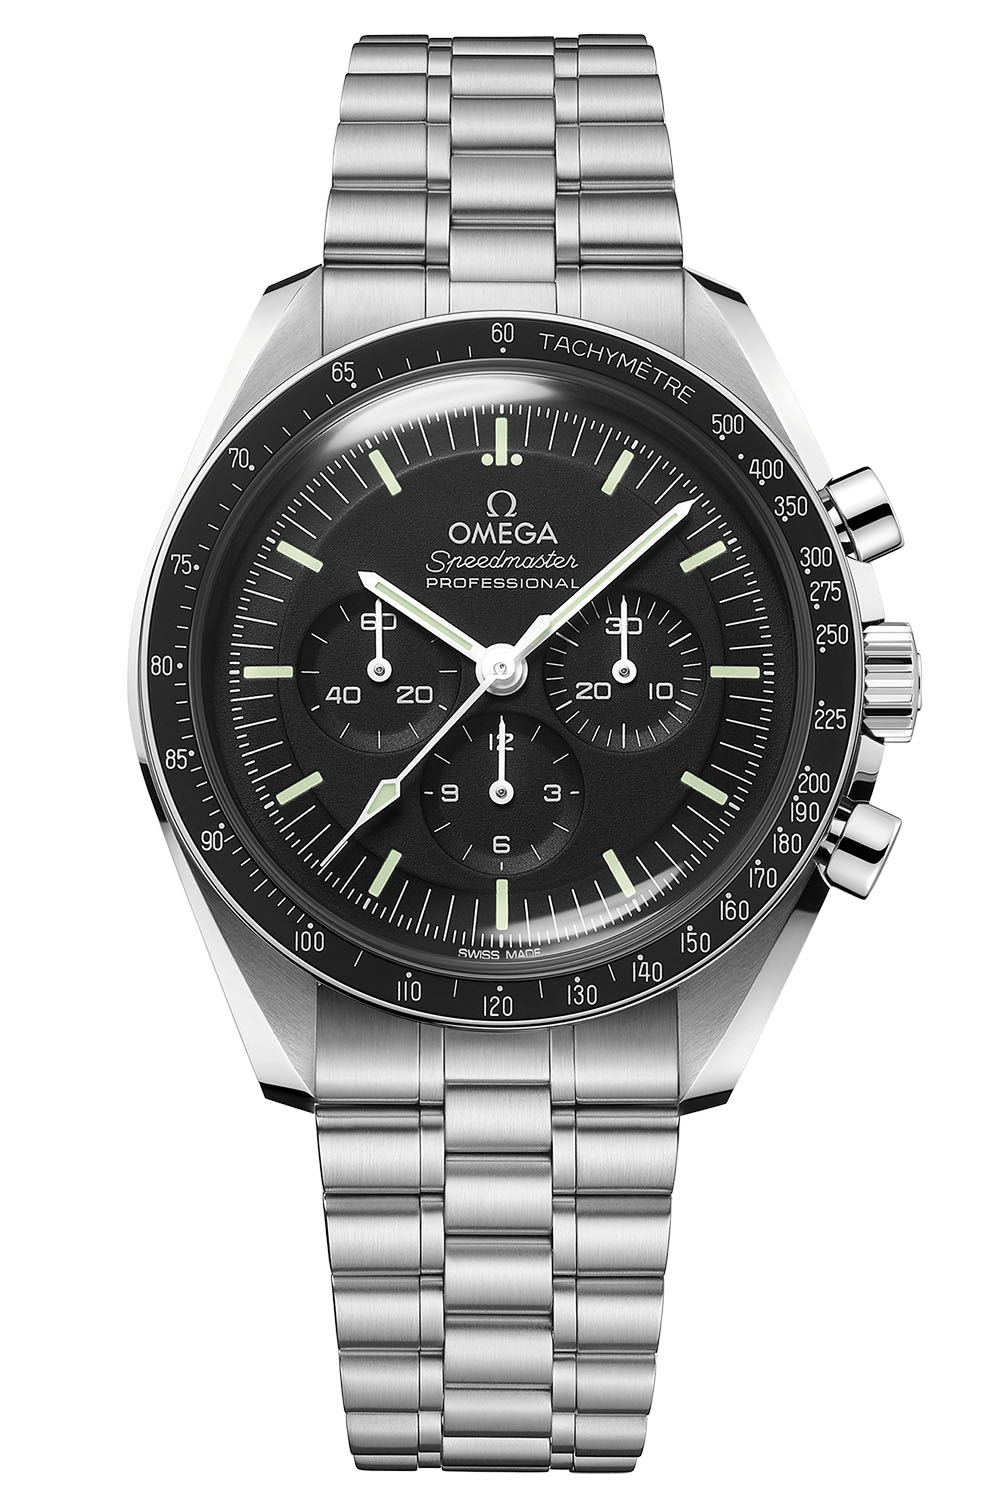 Omega Speedmaster Moonwatch Professional Master Chronometer 2021 Hesalite